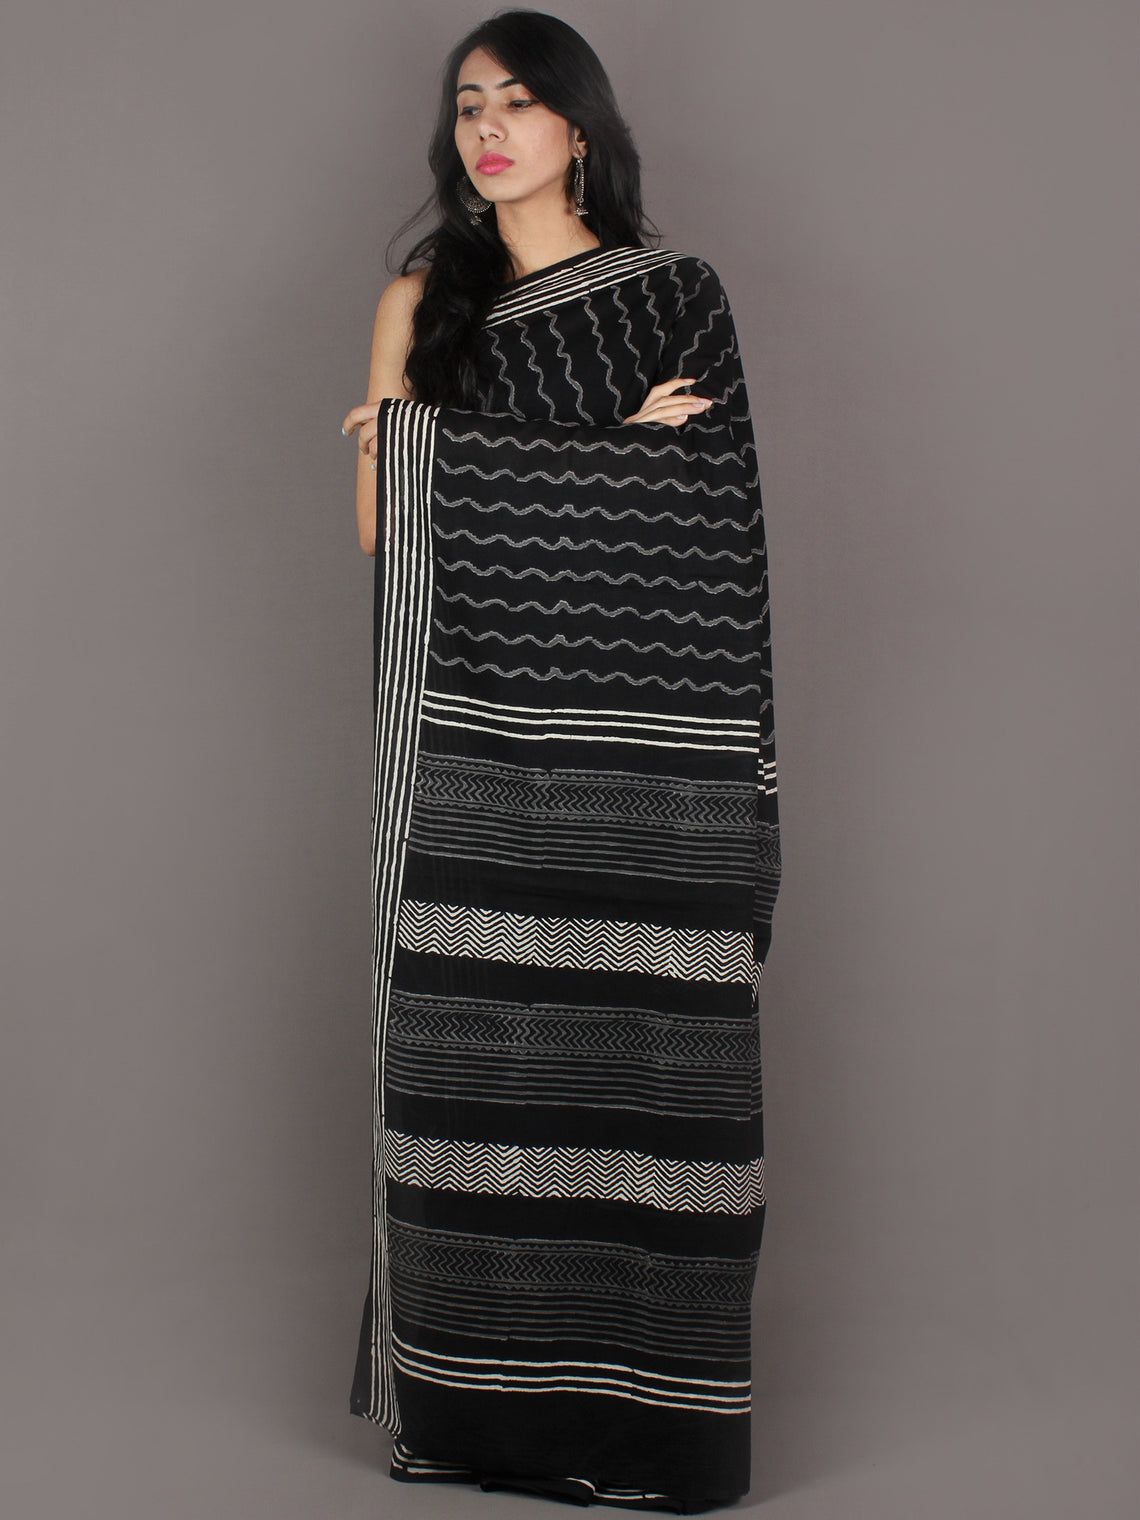 Black Grey White Hand Block Printed in Natural Colors Cotton Mul Saree - S03170914